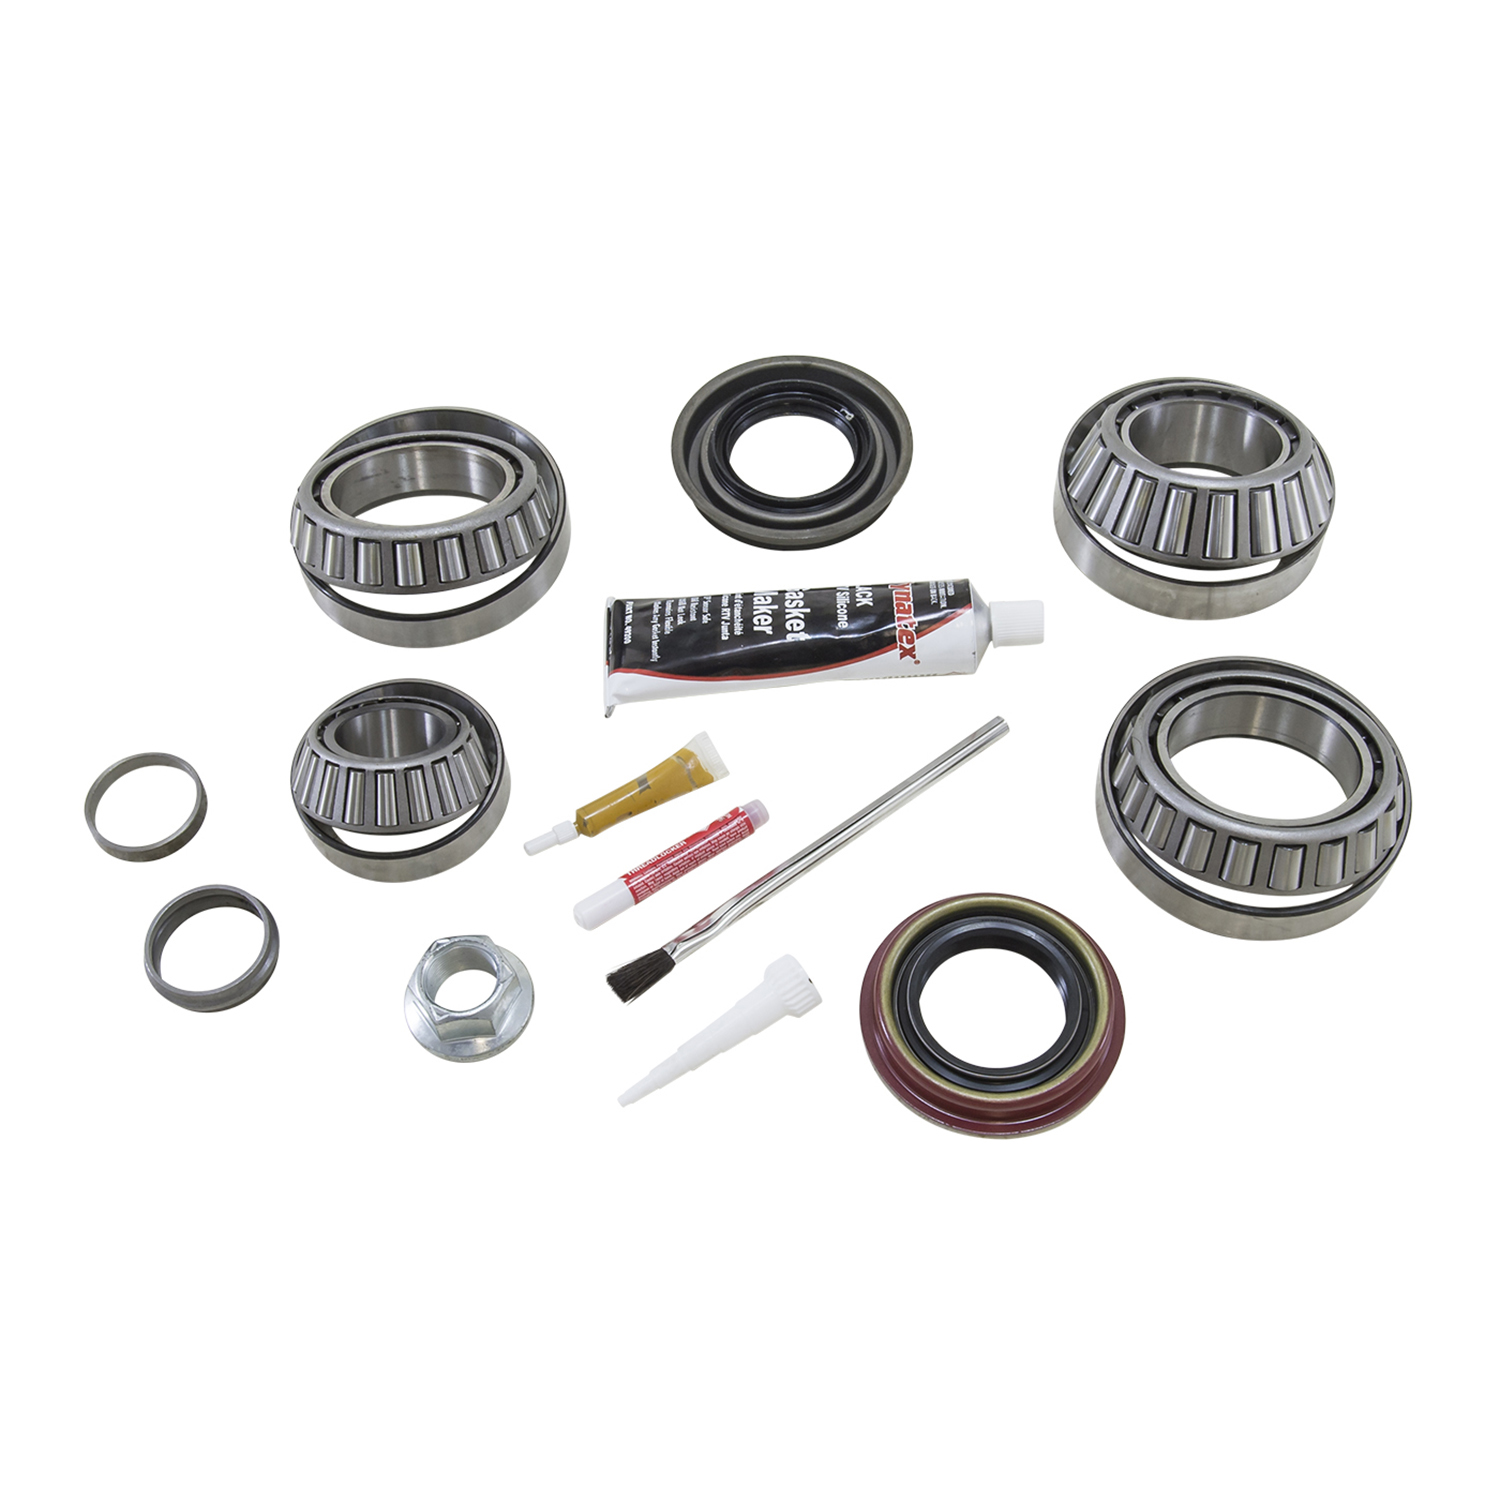 BK F9.75-IRS-A - Yukon bearing install kit for '03 & up Ford 9.75